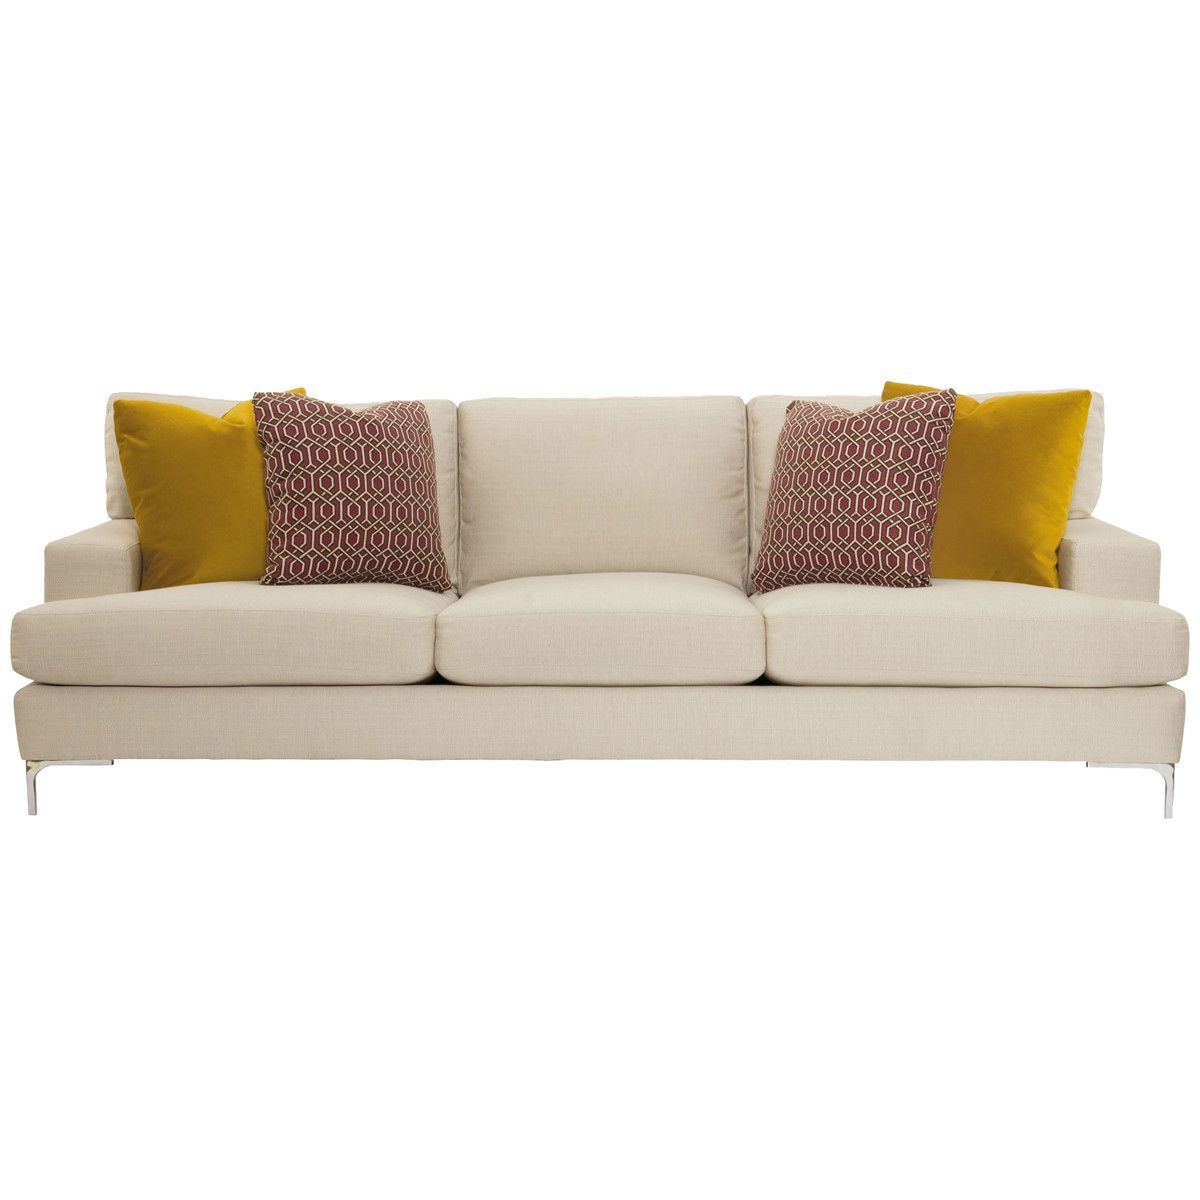 Antike Sofas Contemporary Bernhardt Interiors Carver Sofa Products Möbel Sofa Design Ideen